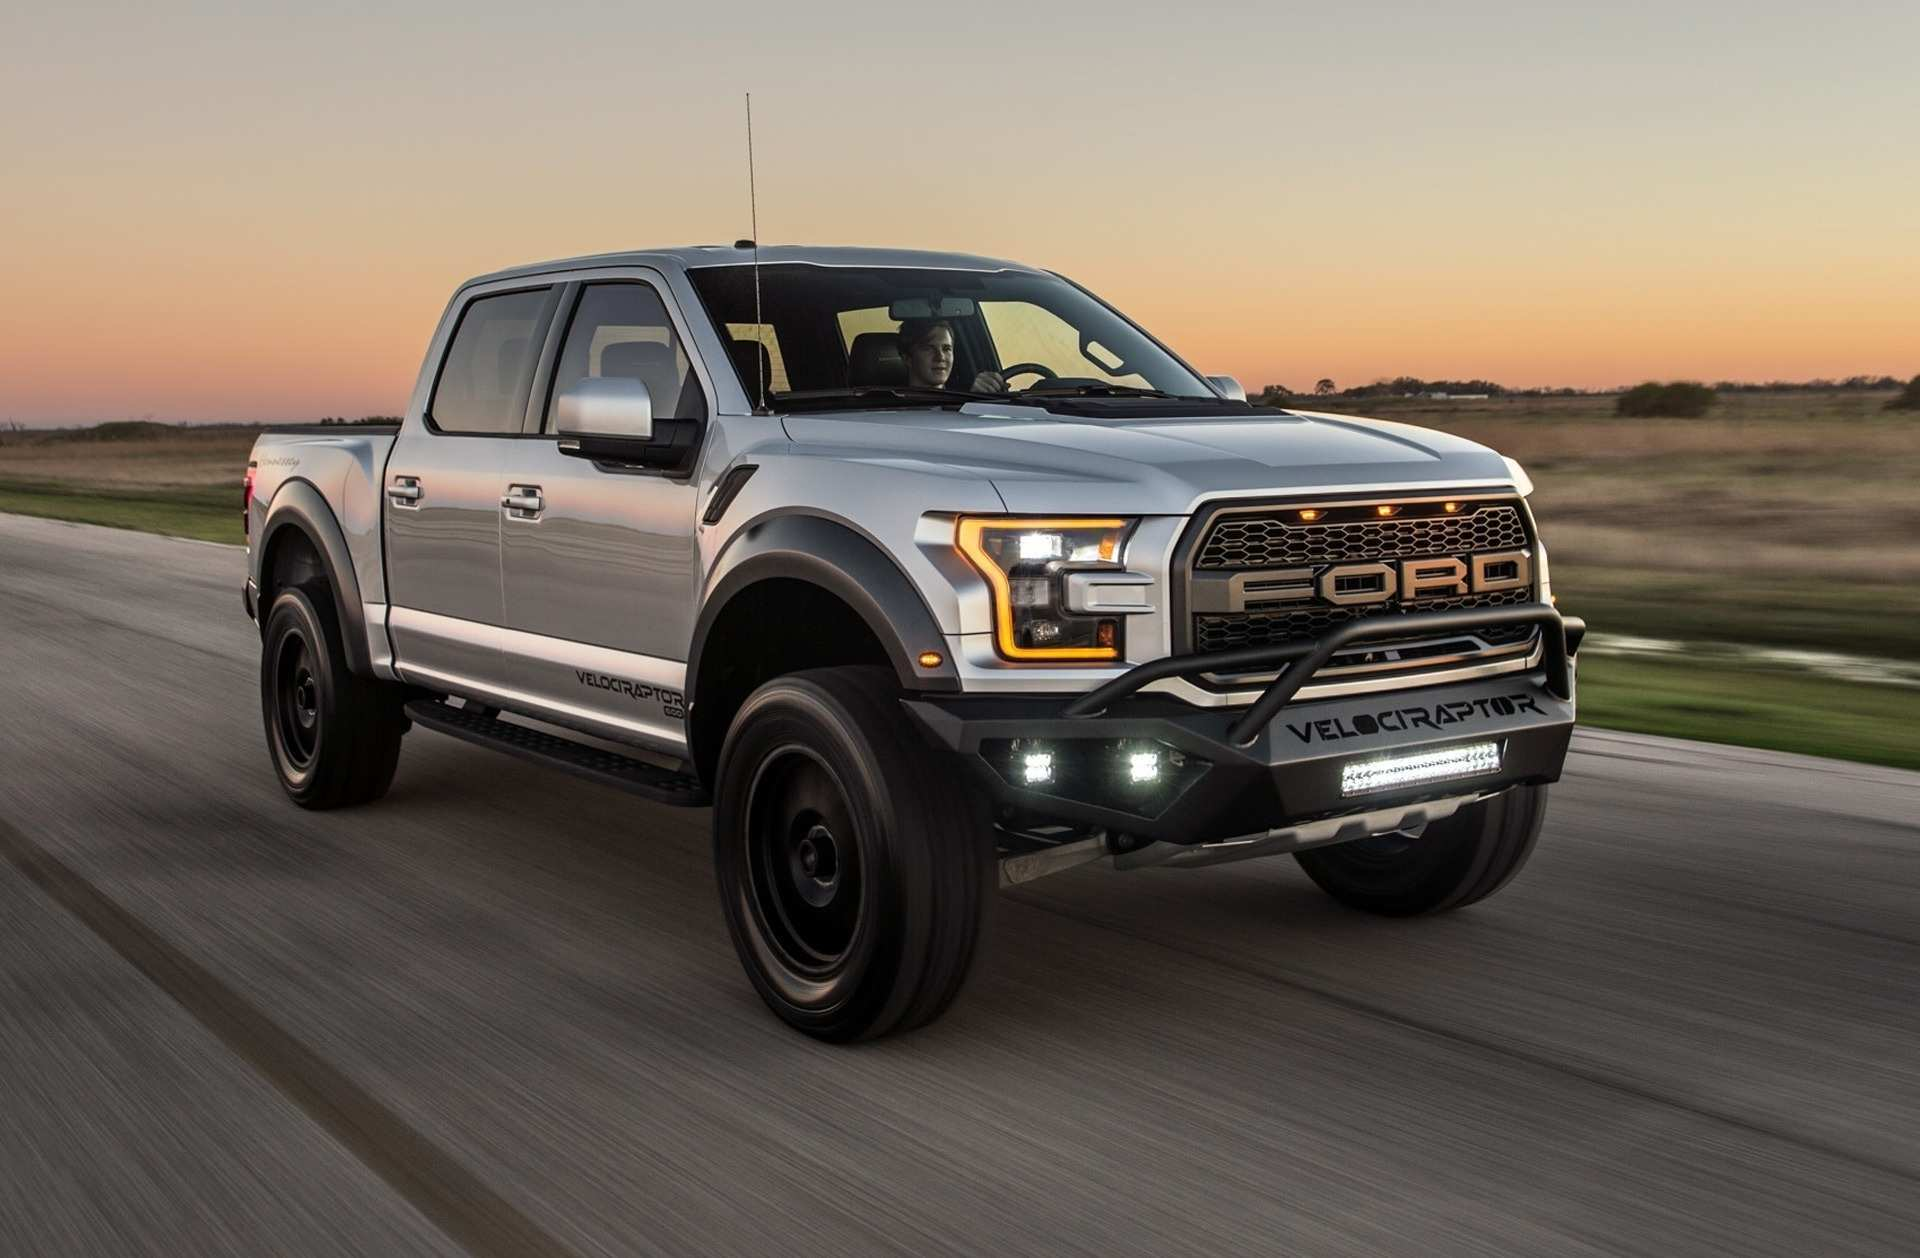 48 All New 2019 Ford F150 Raptor Mpg Style